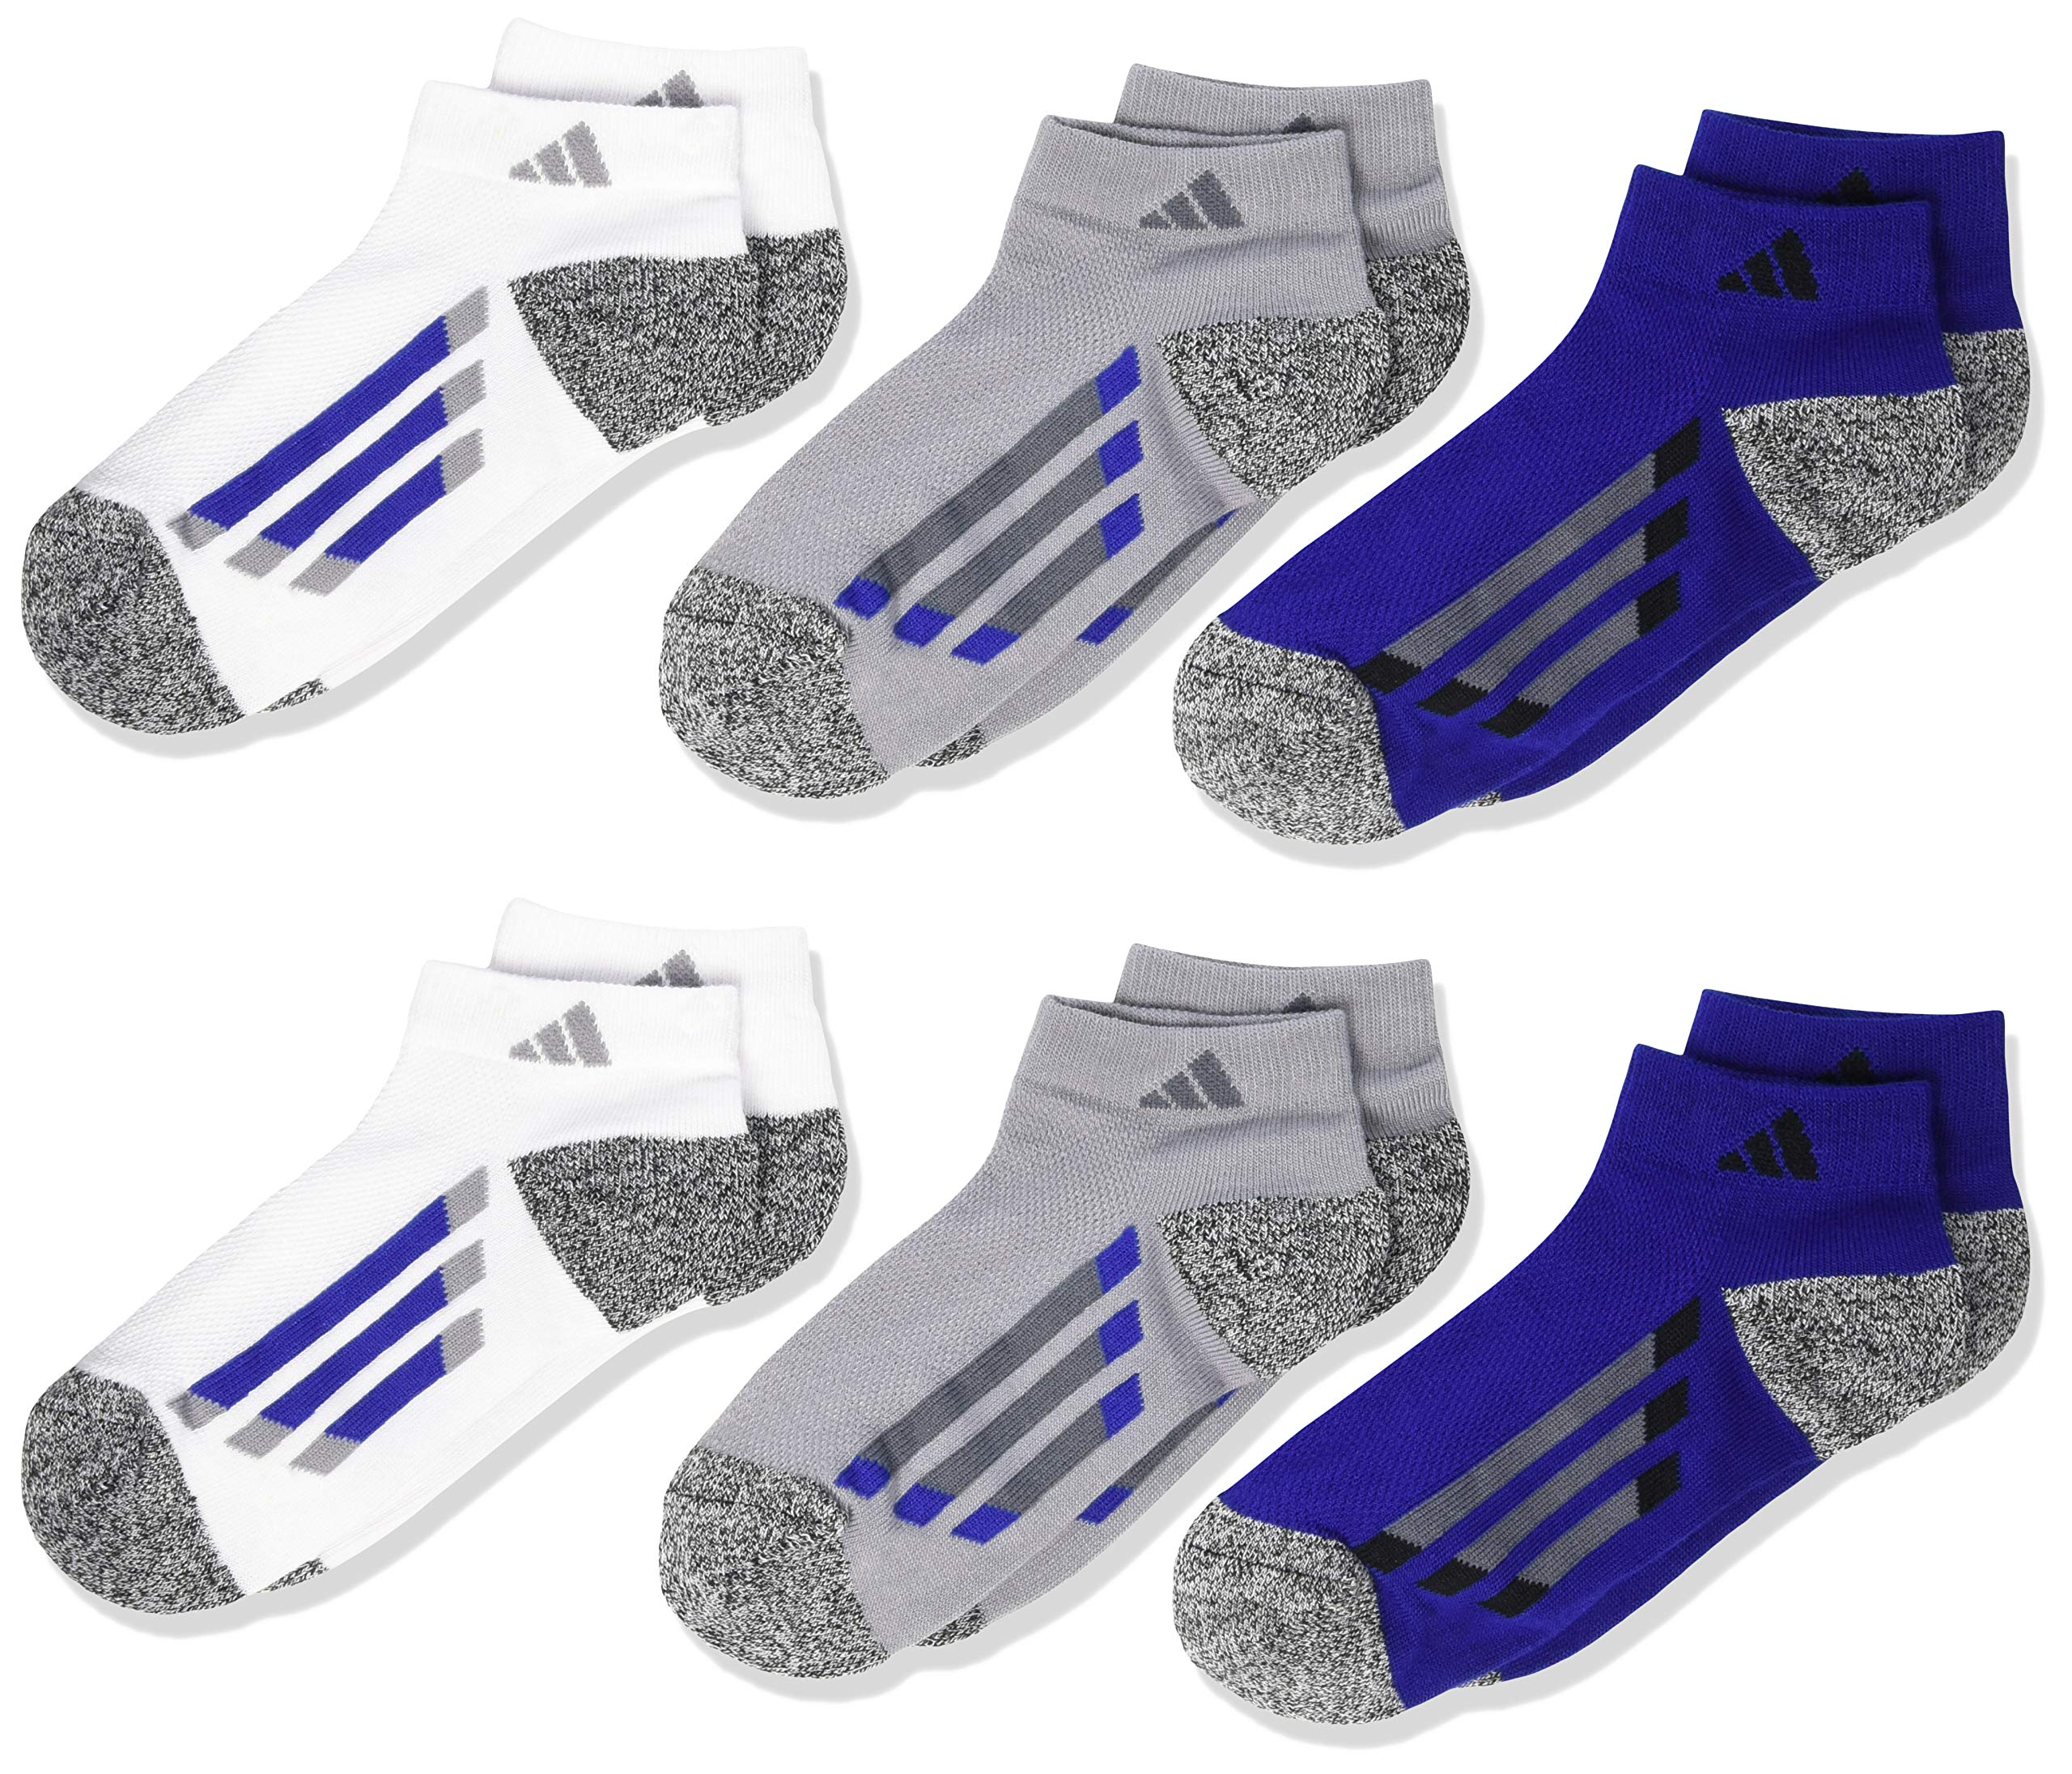 adidas Youth Kids-Boy's/Girl's Cushioned Low Cut Socks (6-Pair), Light Onix/Black - White Marl/Onix/Mystery Ink Blue, Large, (Shoe Size 3Y-9) by adidas